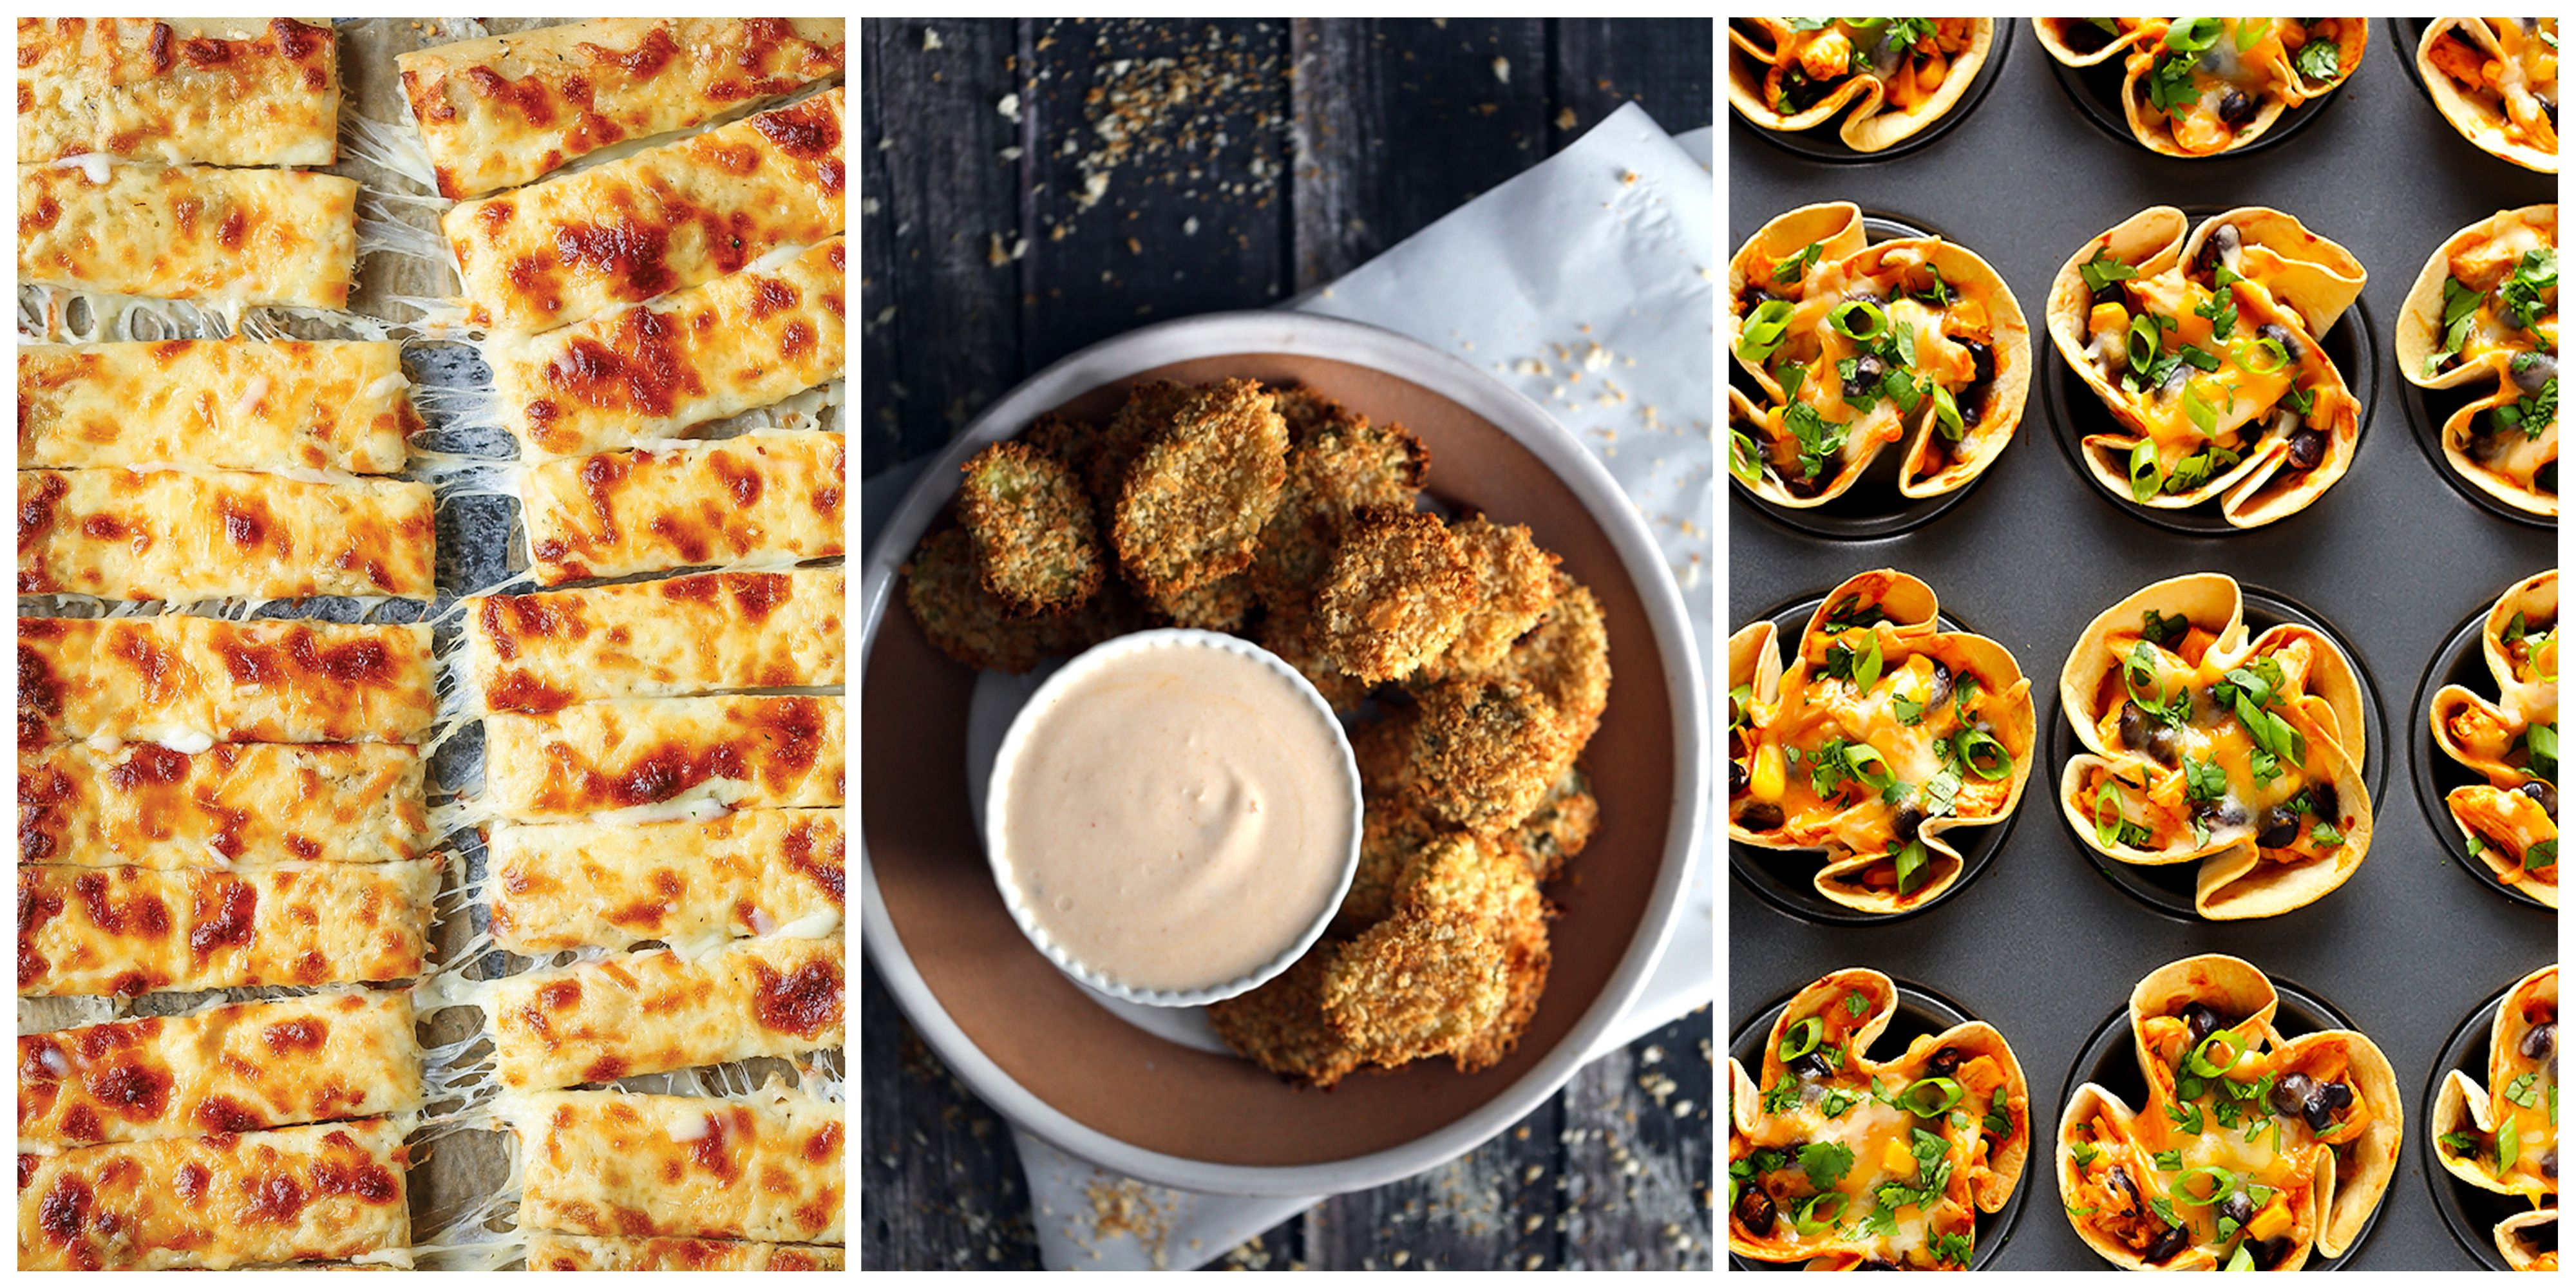 35 Party Food Recipes Best Party Foods with Backyard Party Food Ideas